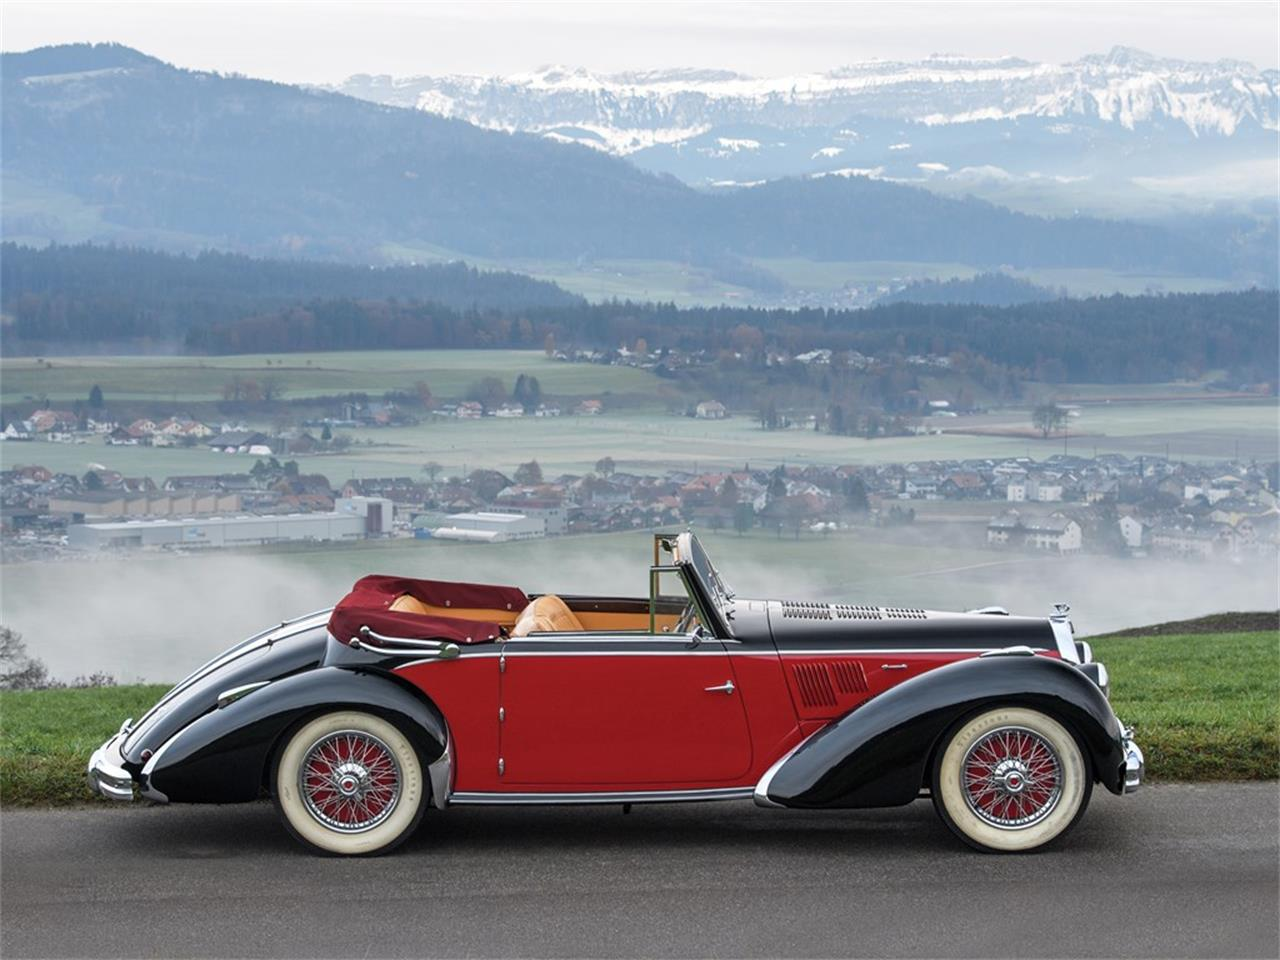 1948 Talbot-Lago T26 Record for sale in Essen, Other – photo 5